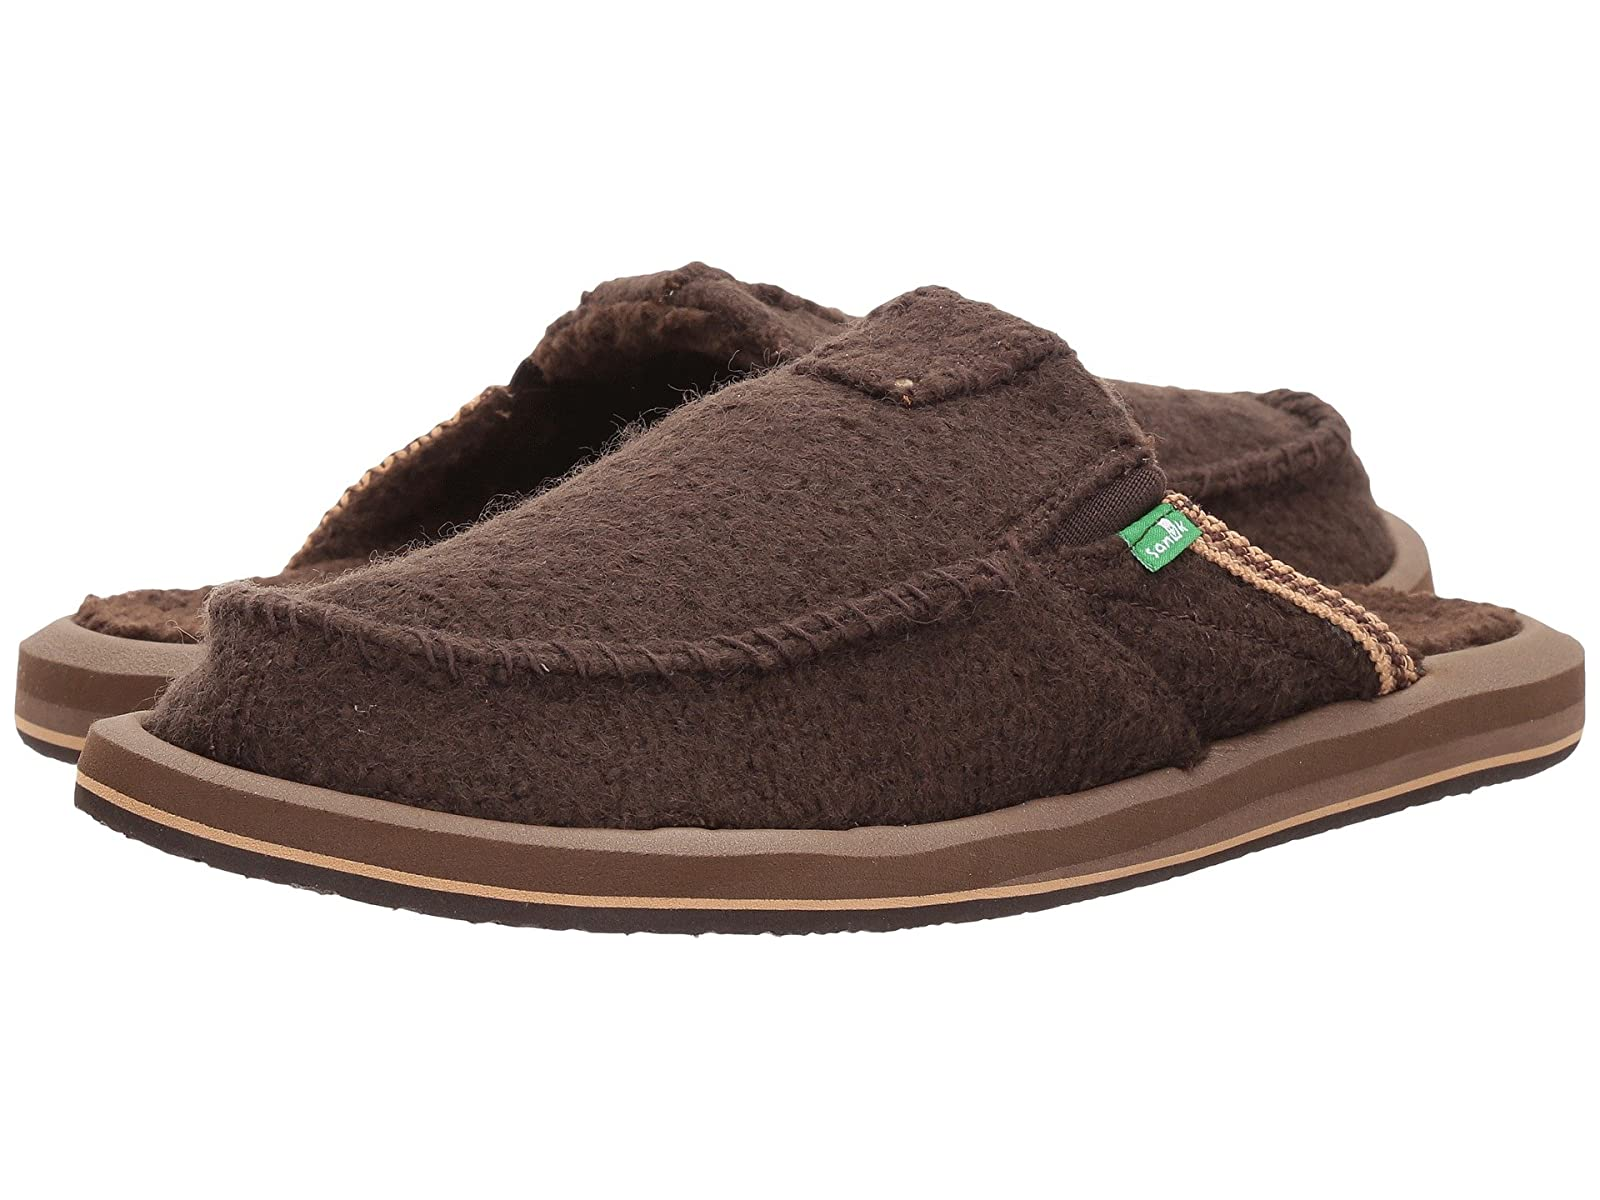 Sanuk You Got My Back ChillAtmospheric grades have affordable shoes